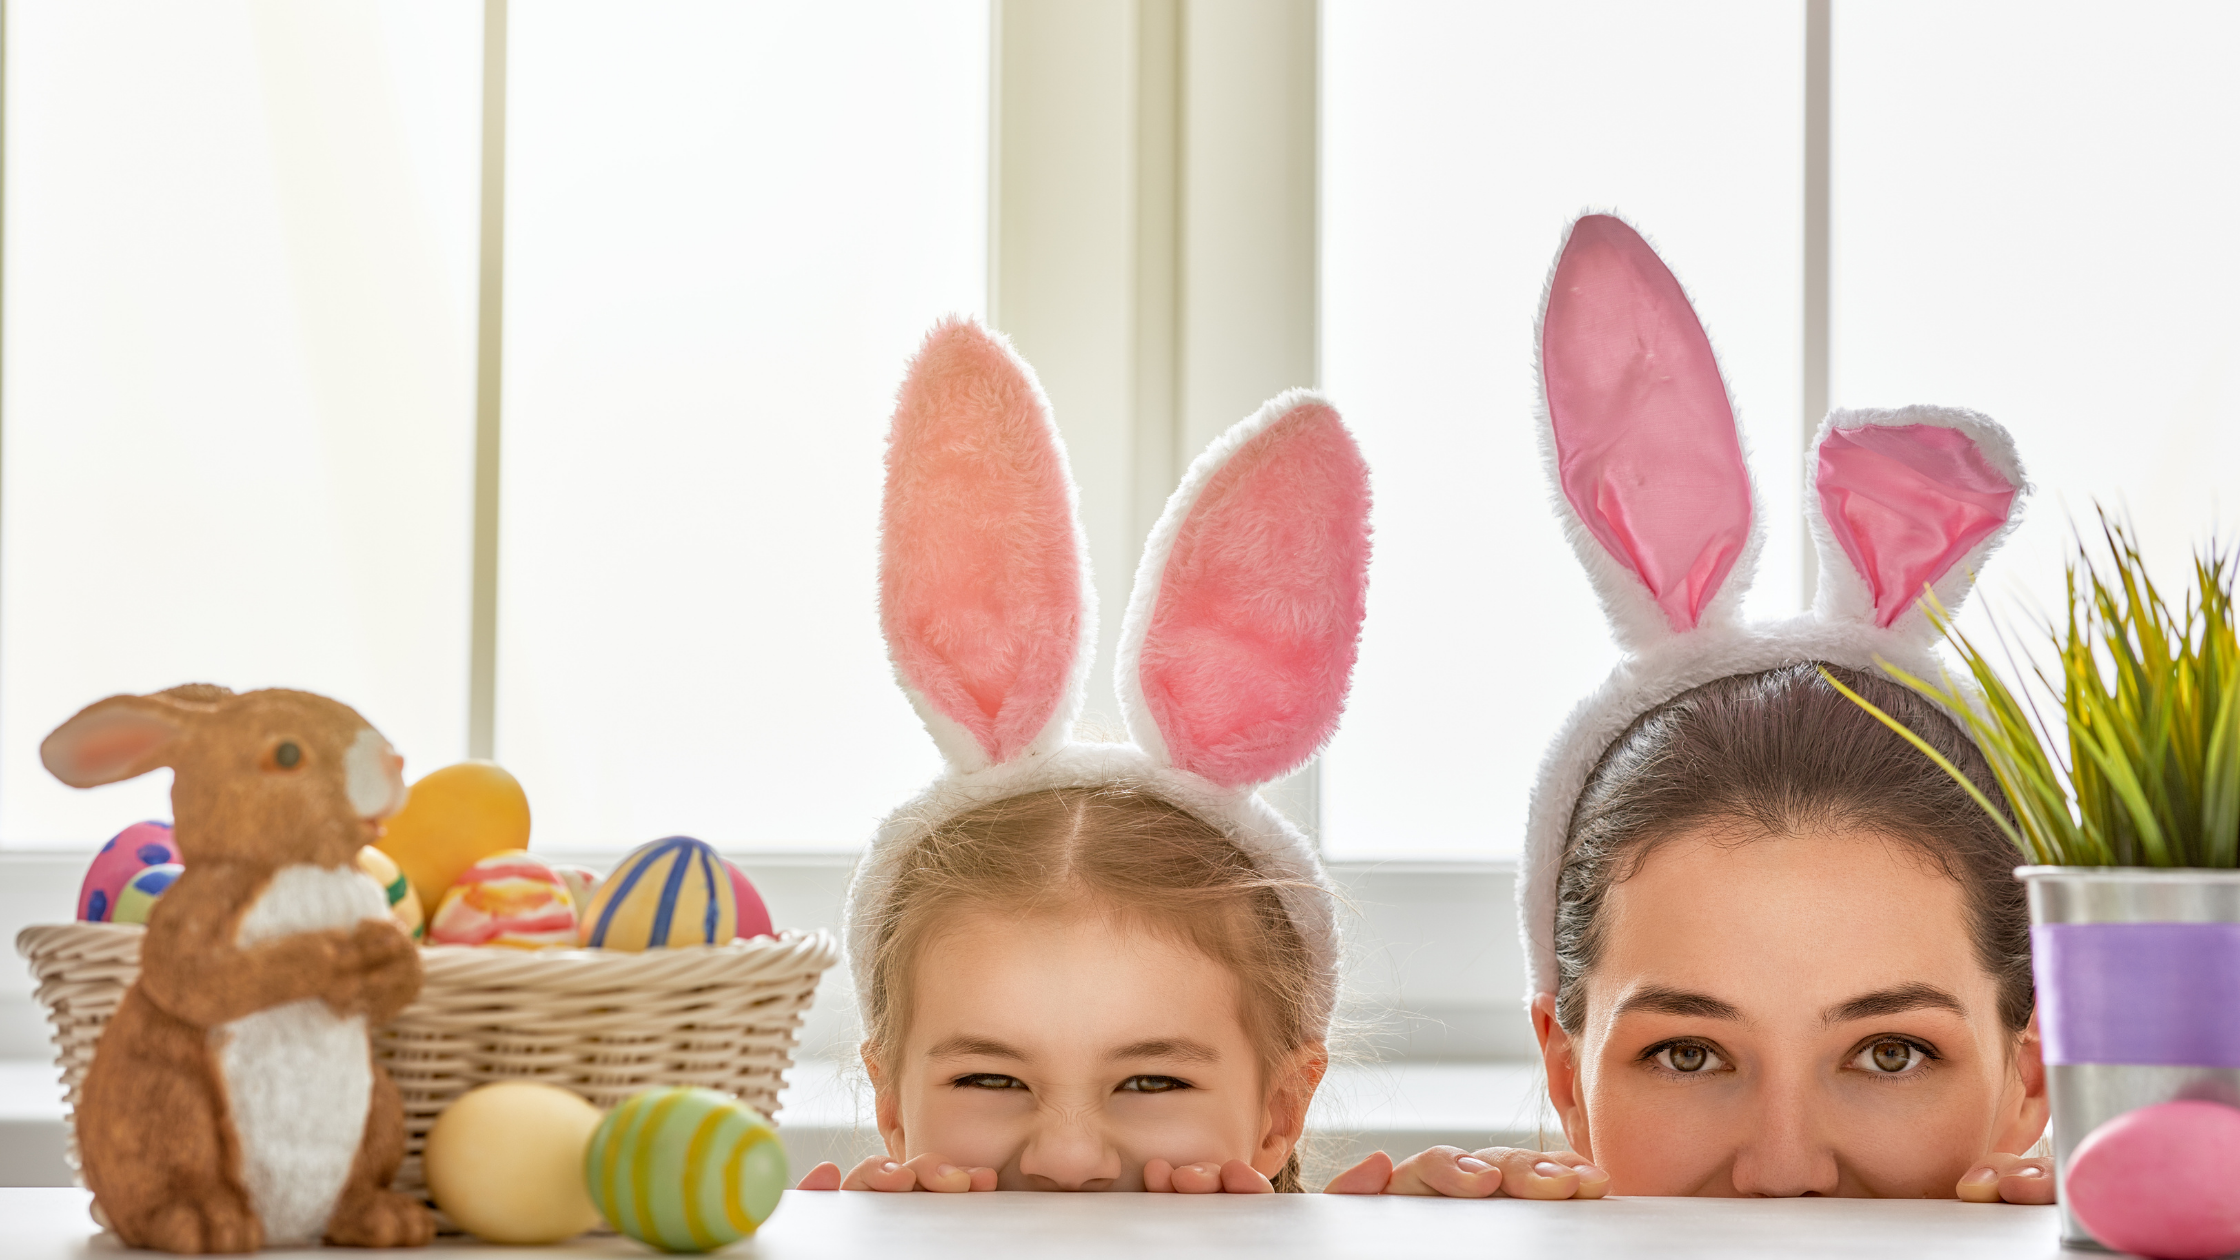 10 Easter Crafts You Can Do at Home